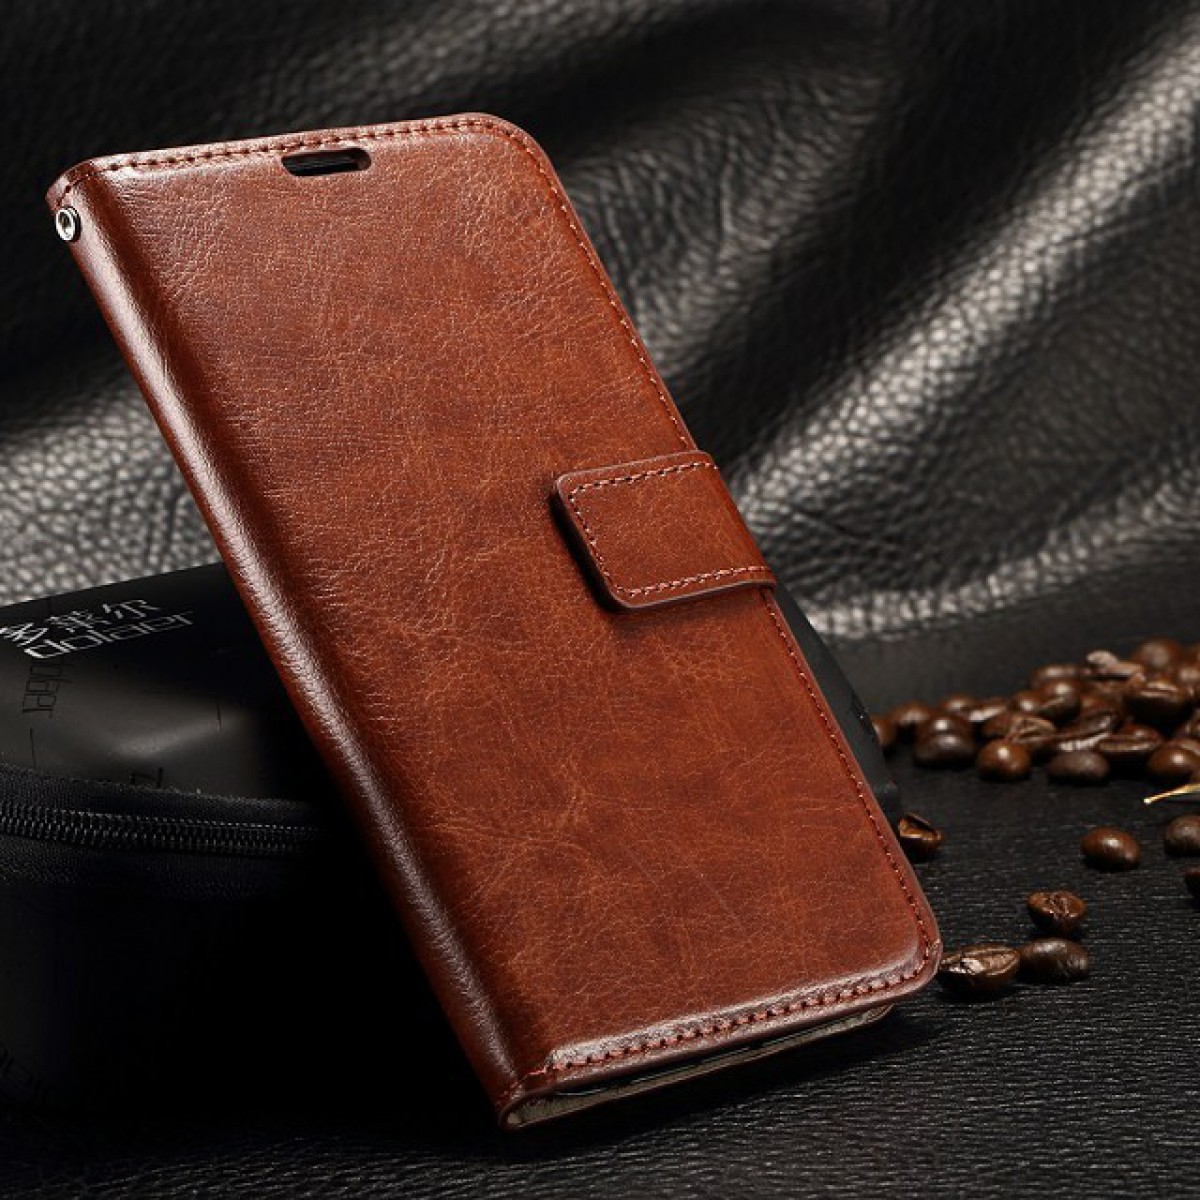 samsung s6 edge leather case